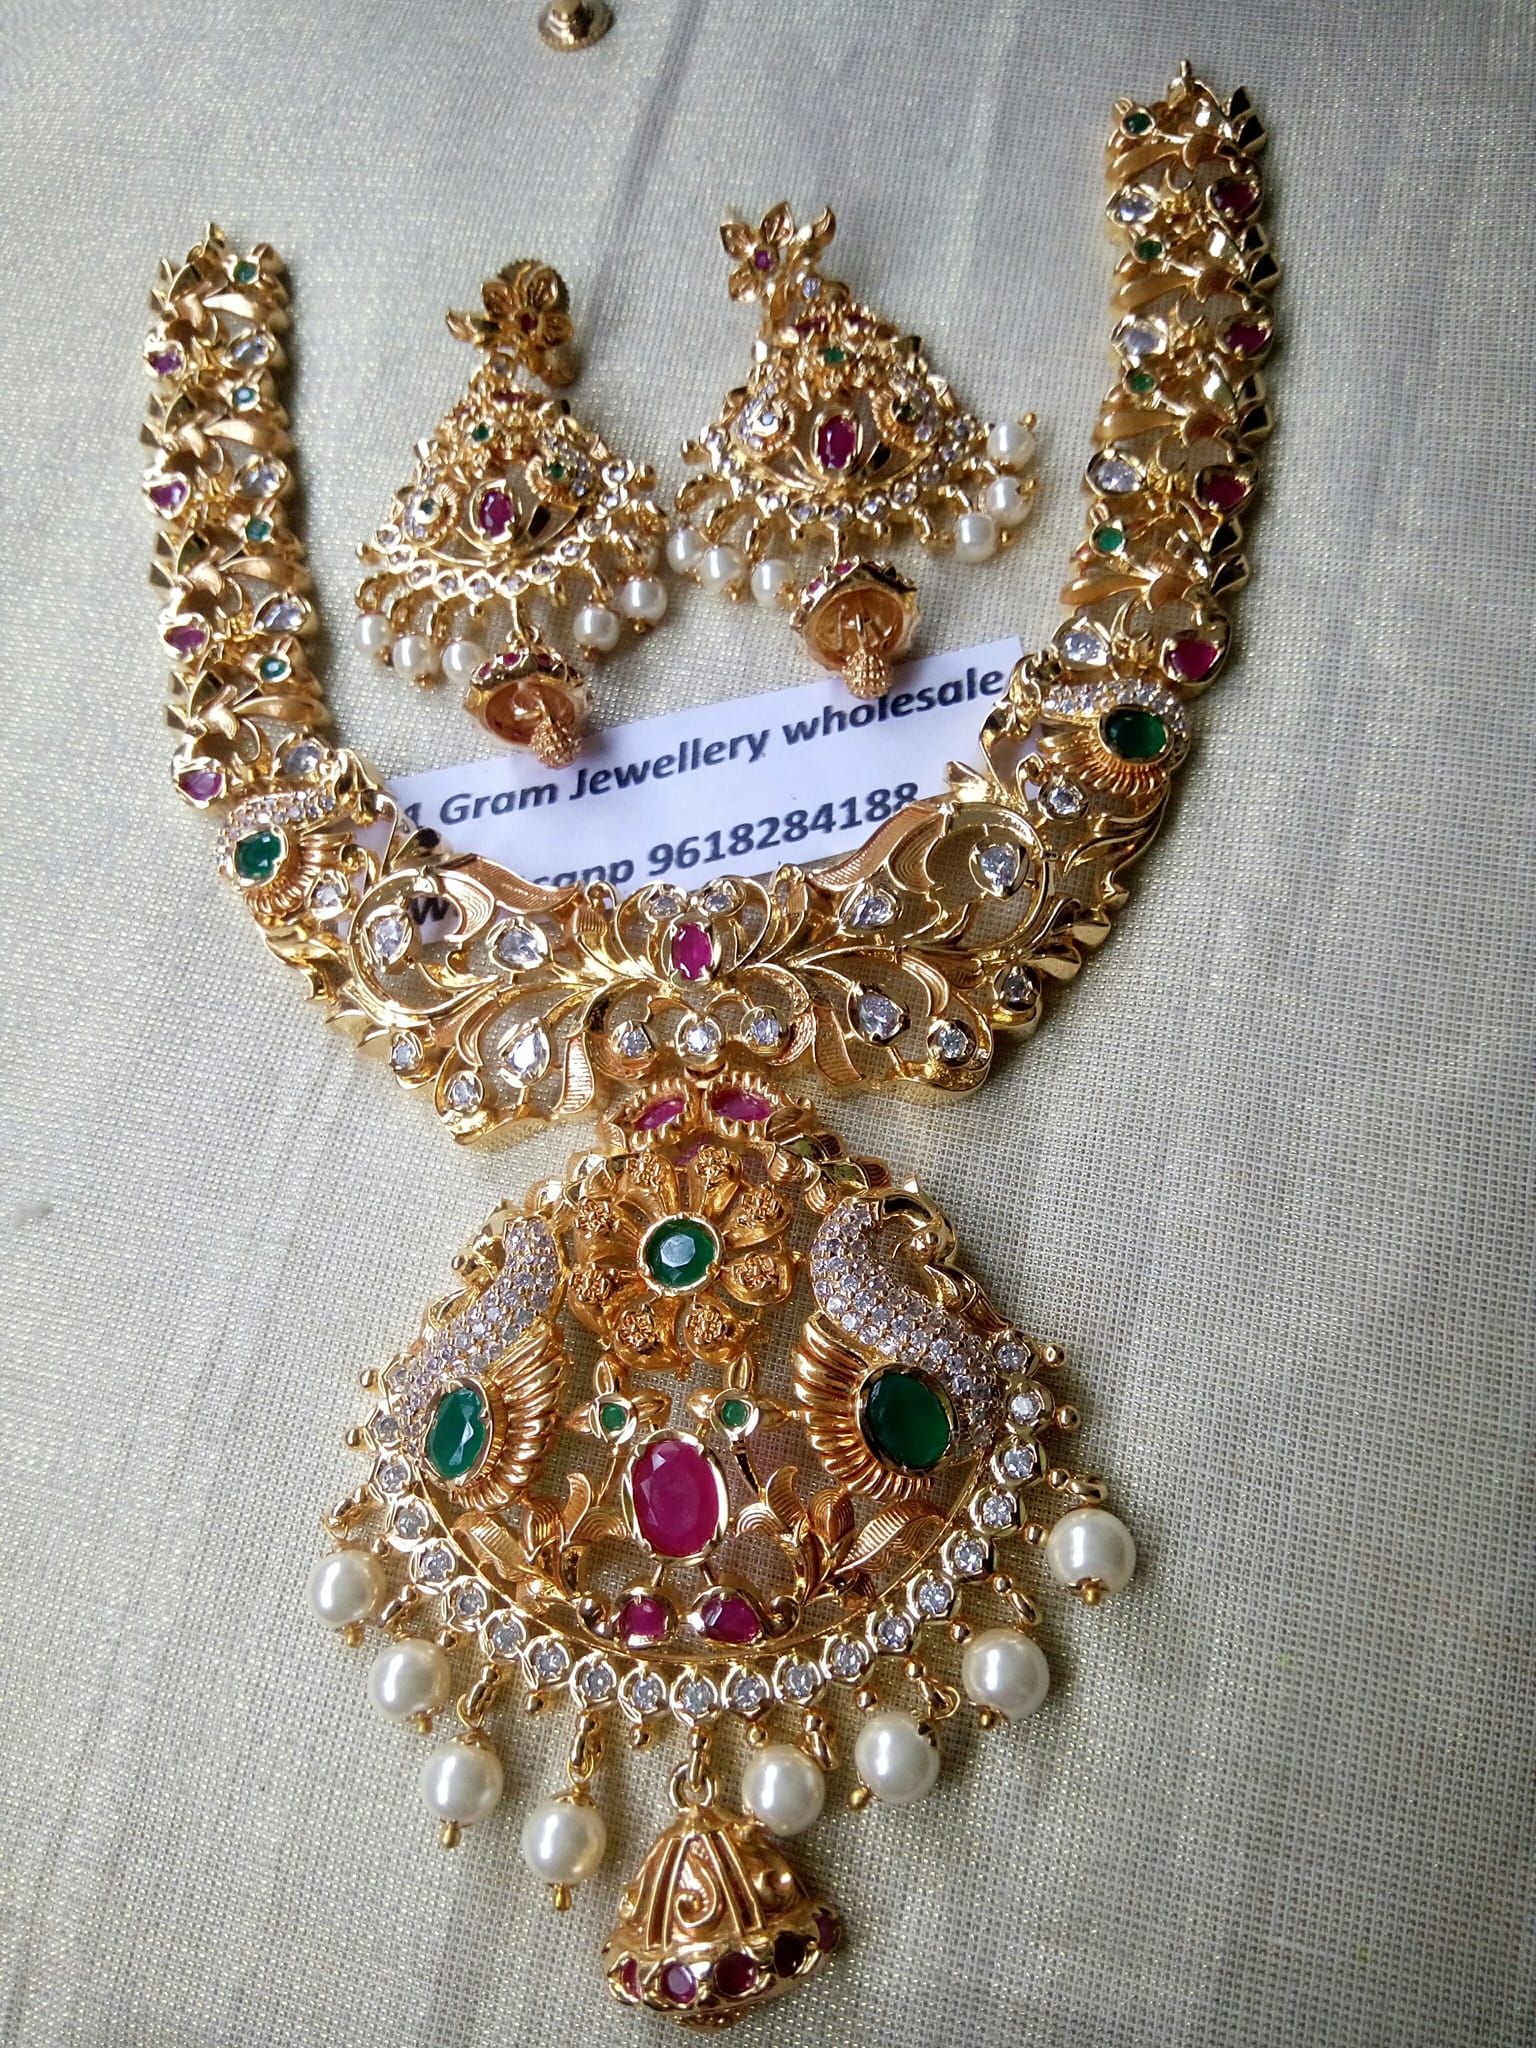 6428c9b7b18 1 gram gold jewellery wholesale. Contact   9618284188.